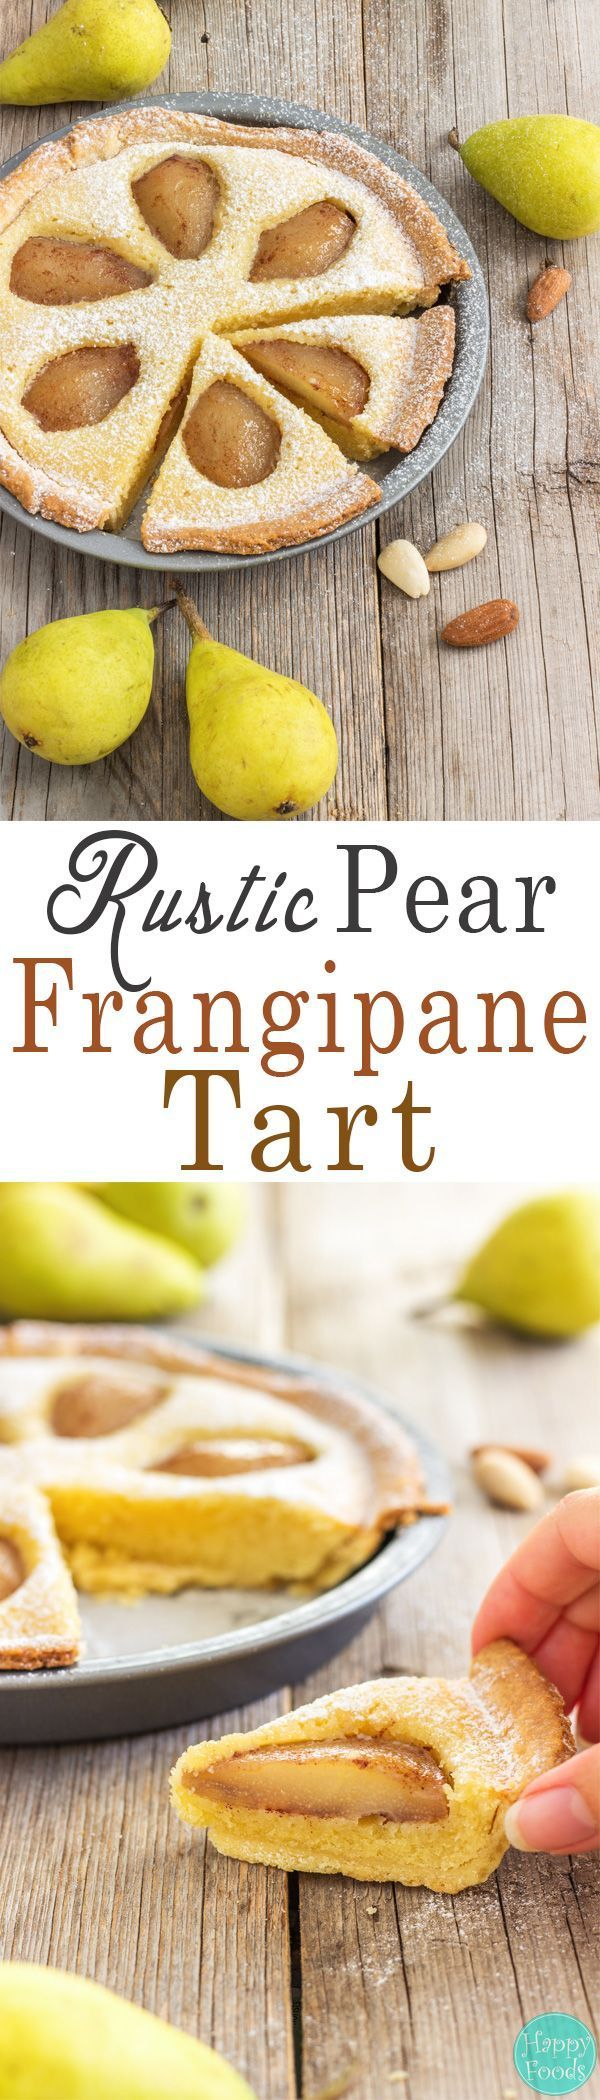 Rustic Pear Frangipane Tart - Homemade fresh pear and almond tart recipe. You will love this easy to follow dessert. ♥️ | http://happyfoodstube.com